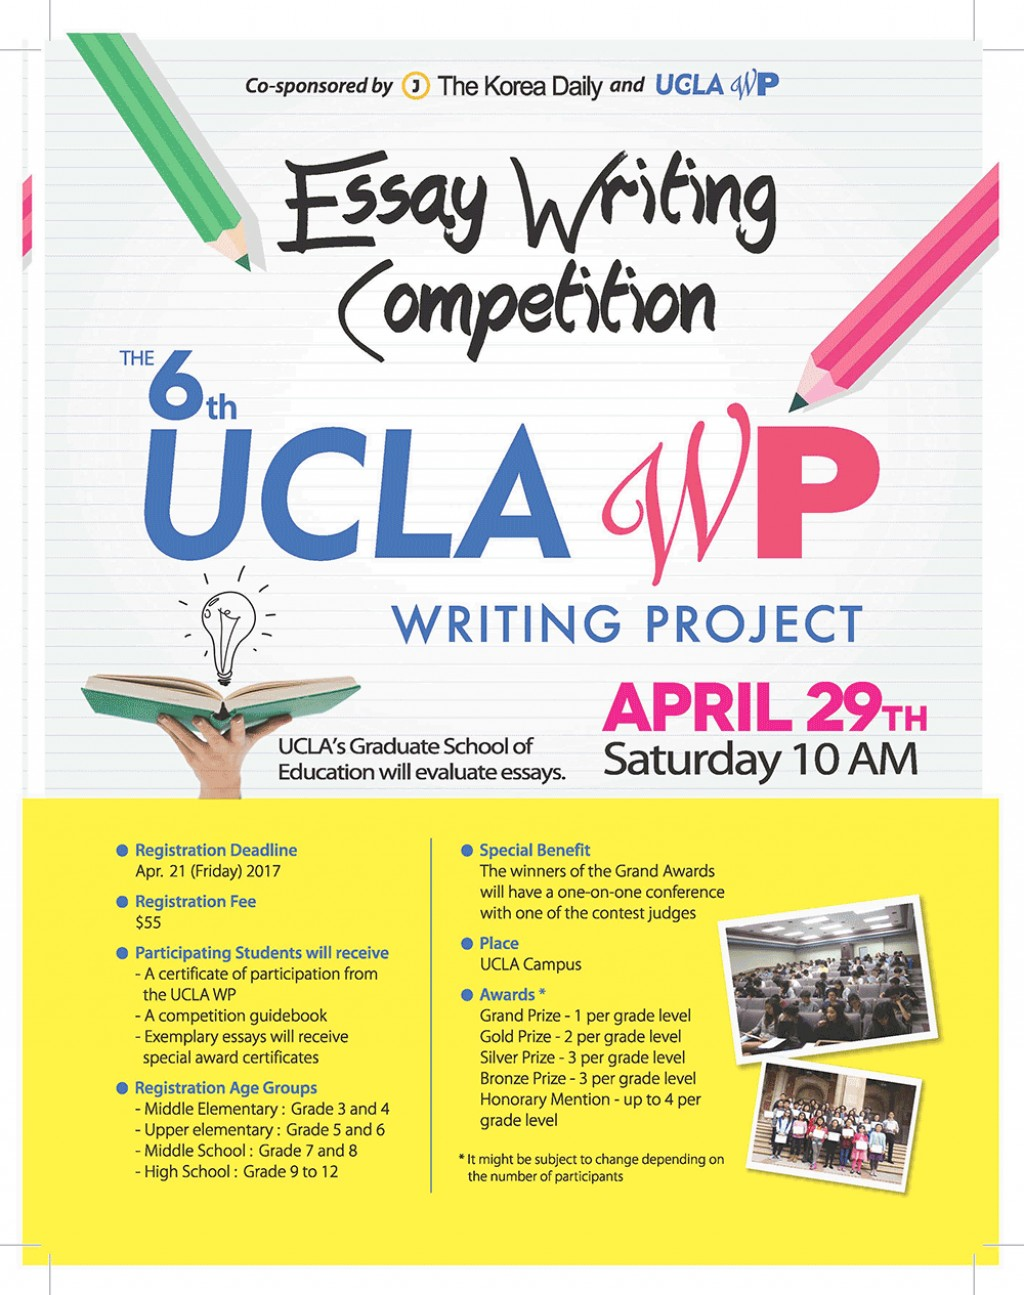 008 Essay Writing Contest Example Uclakoreandaily Incredible Free Contests 2018 International Competitions For High School Students India Large